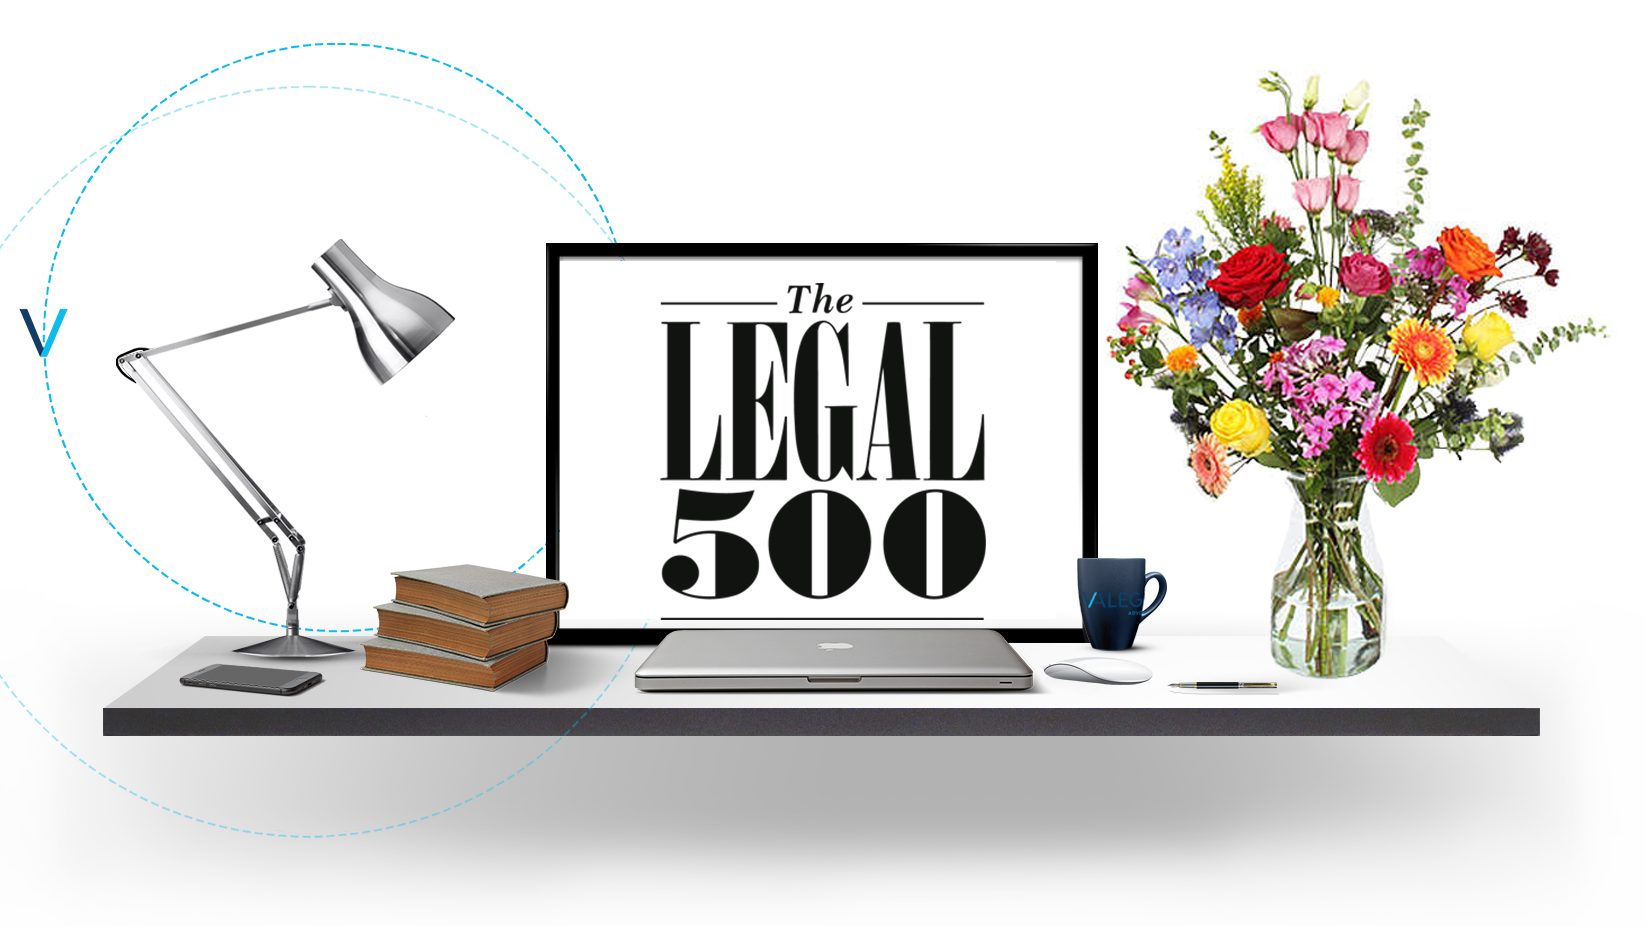 Our employment law team included in the Legal 500 this year again!